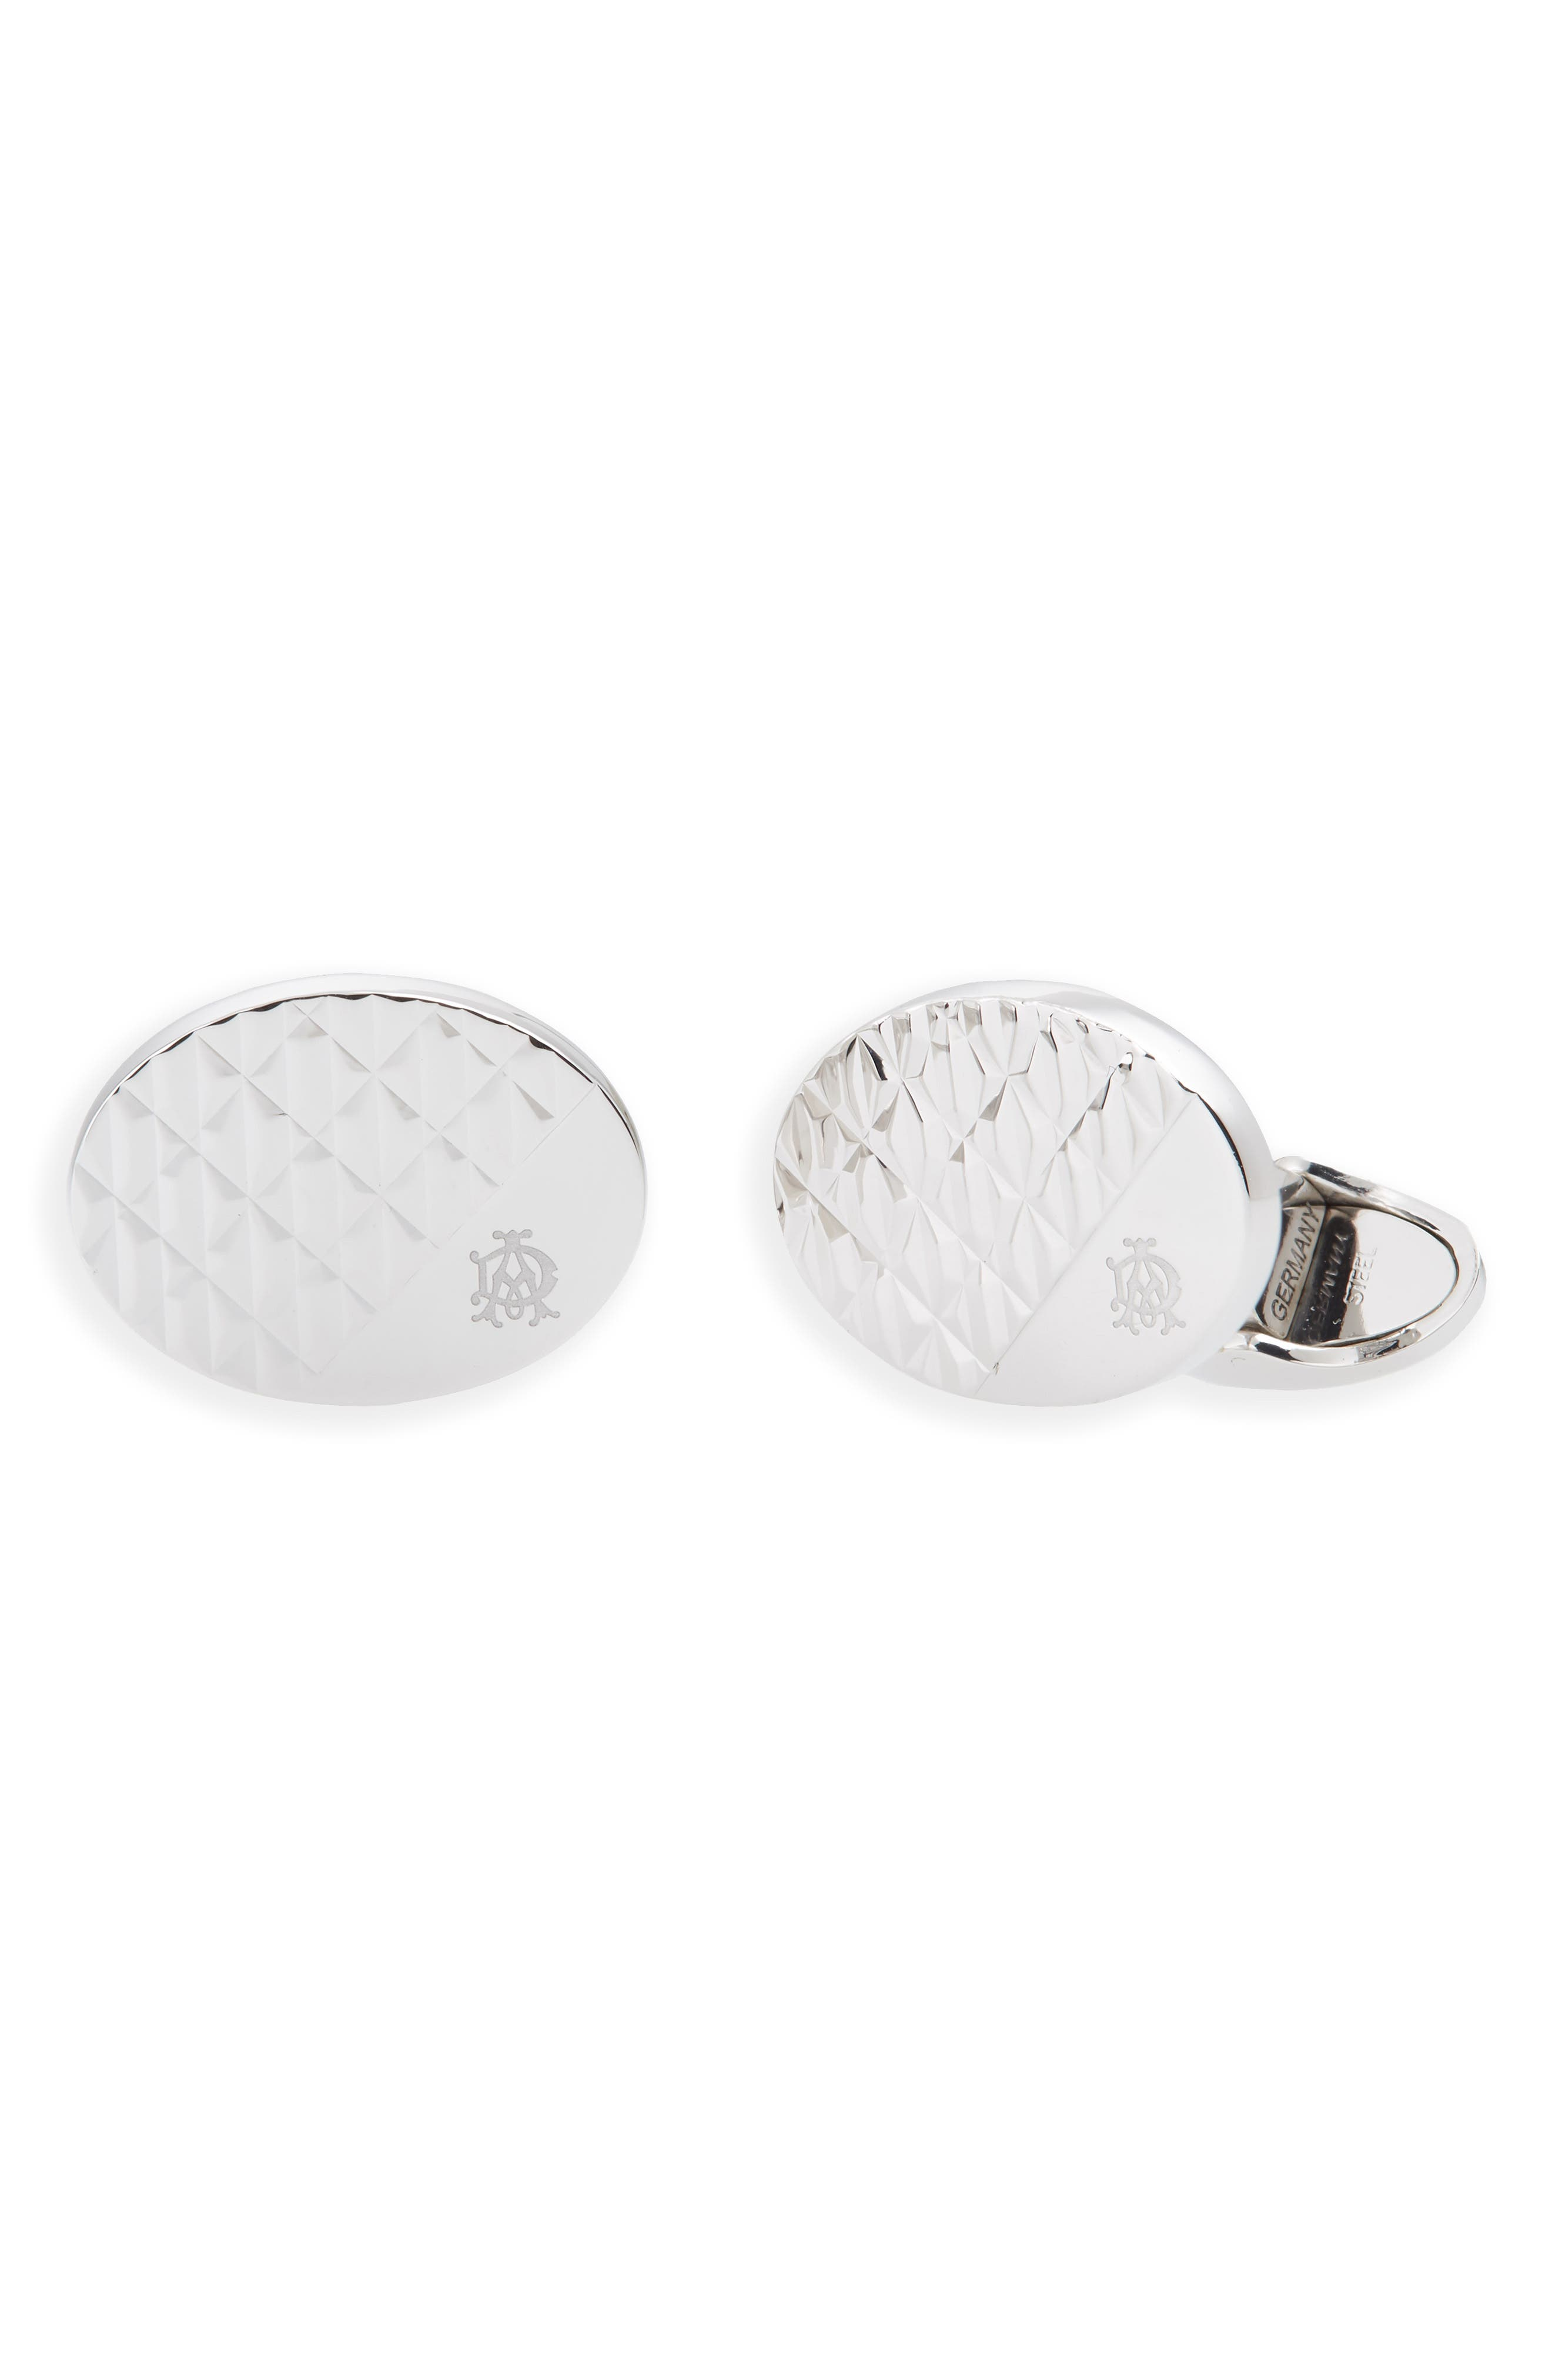 Modernist Cuff Links,                             Main thumbnail 1, color,                             SILVER